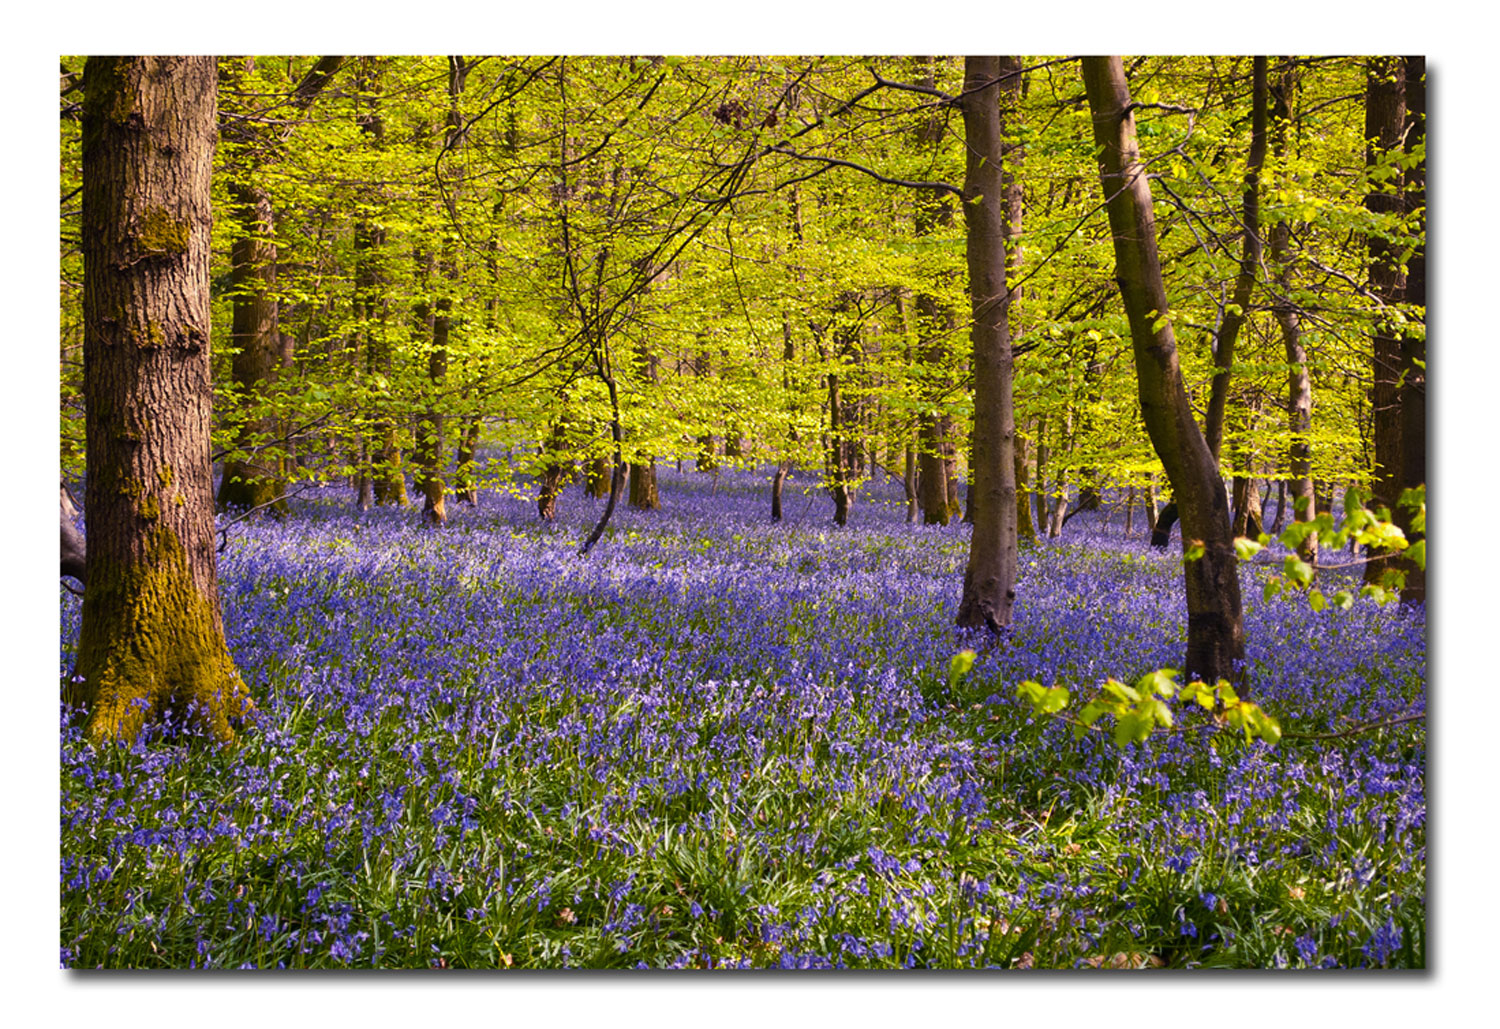 There isn't a finer floral sight than blankets of bluebells, and the Forest of Dean is one of the best places in the UK to see the blossoming flowers.